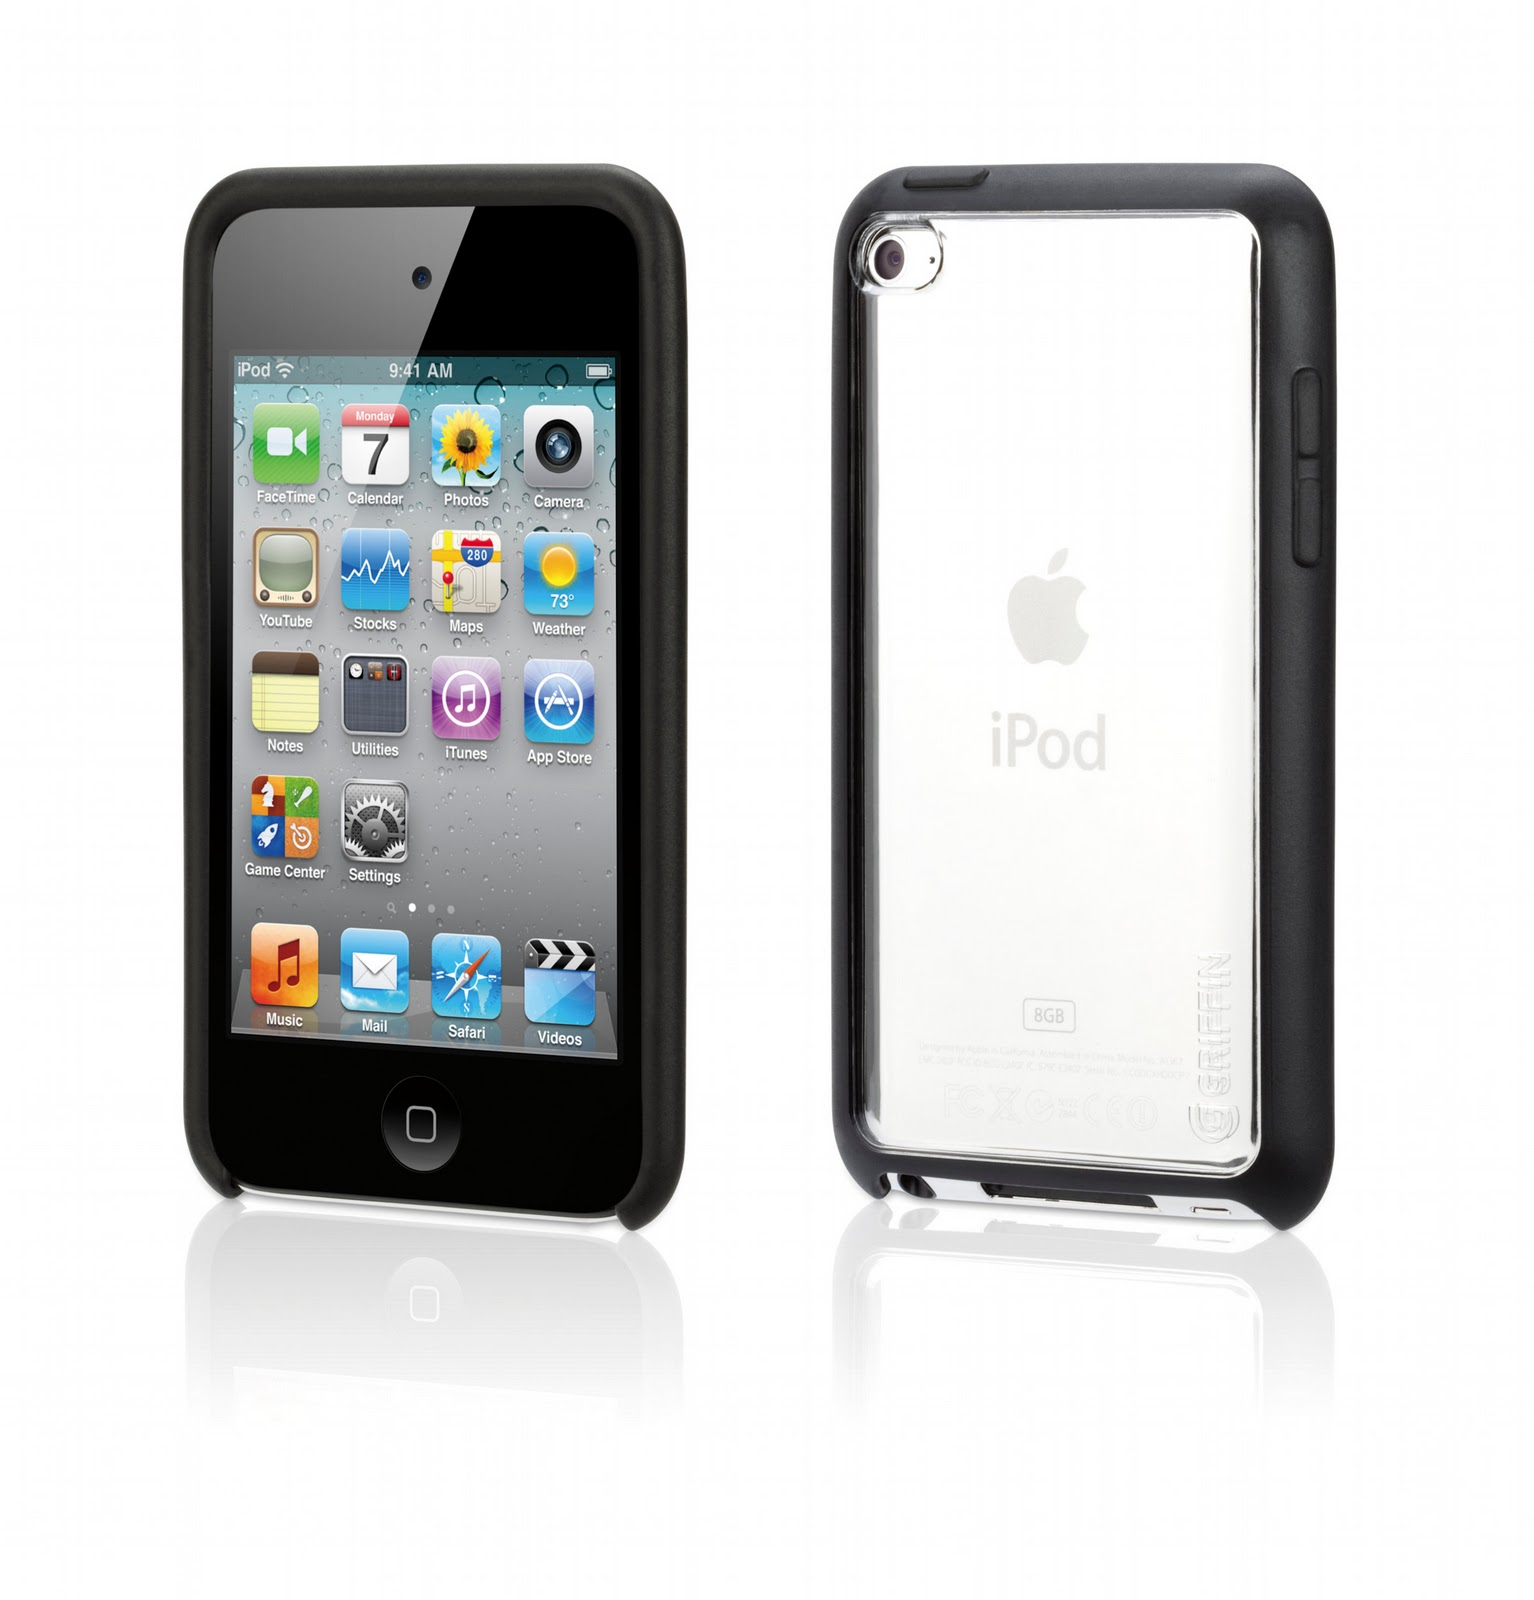 ipod nano touch,  ipod touch 4g with camera,  iphone touch 4g